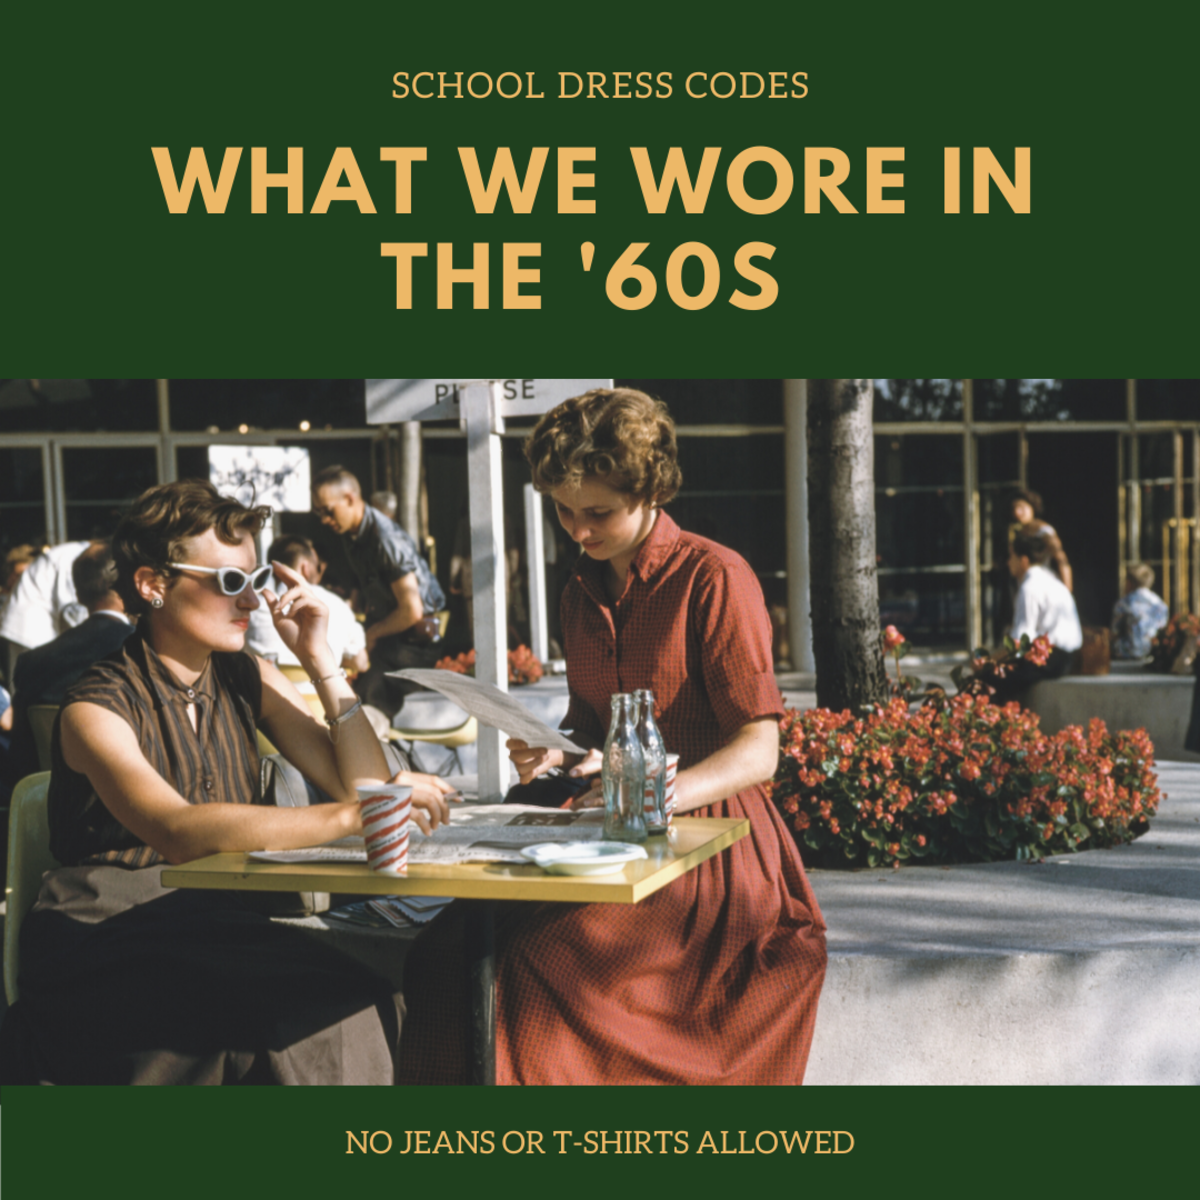 Young Fashion: Public School Dress Codes of the 1960s and 1970s